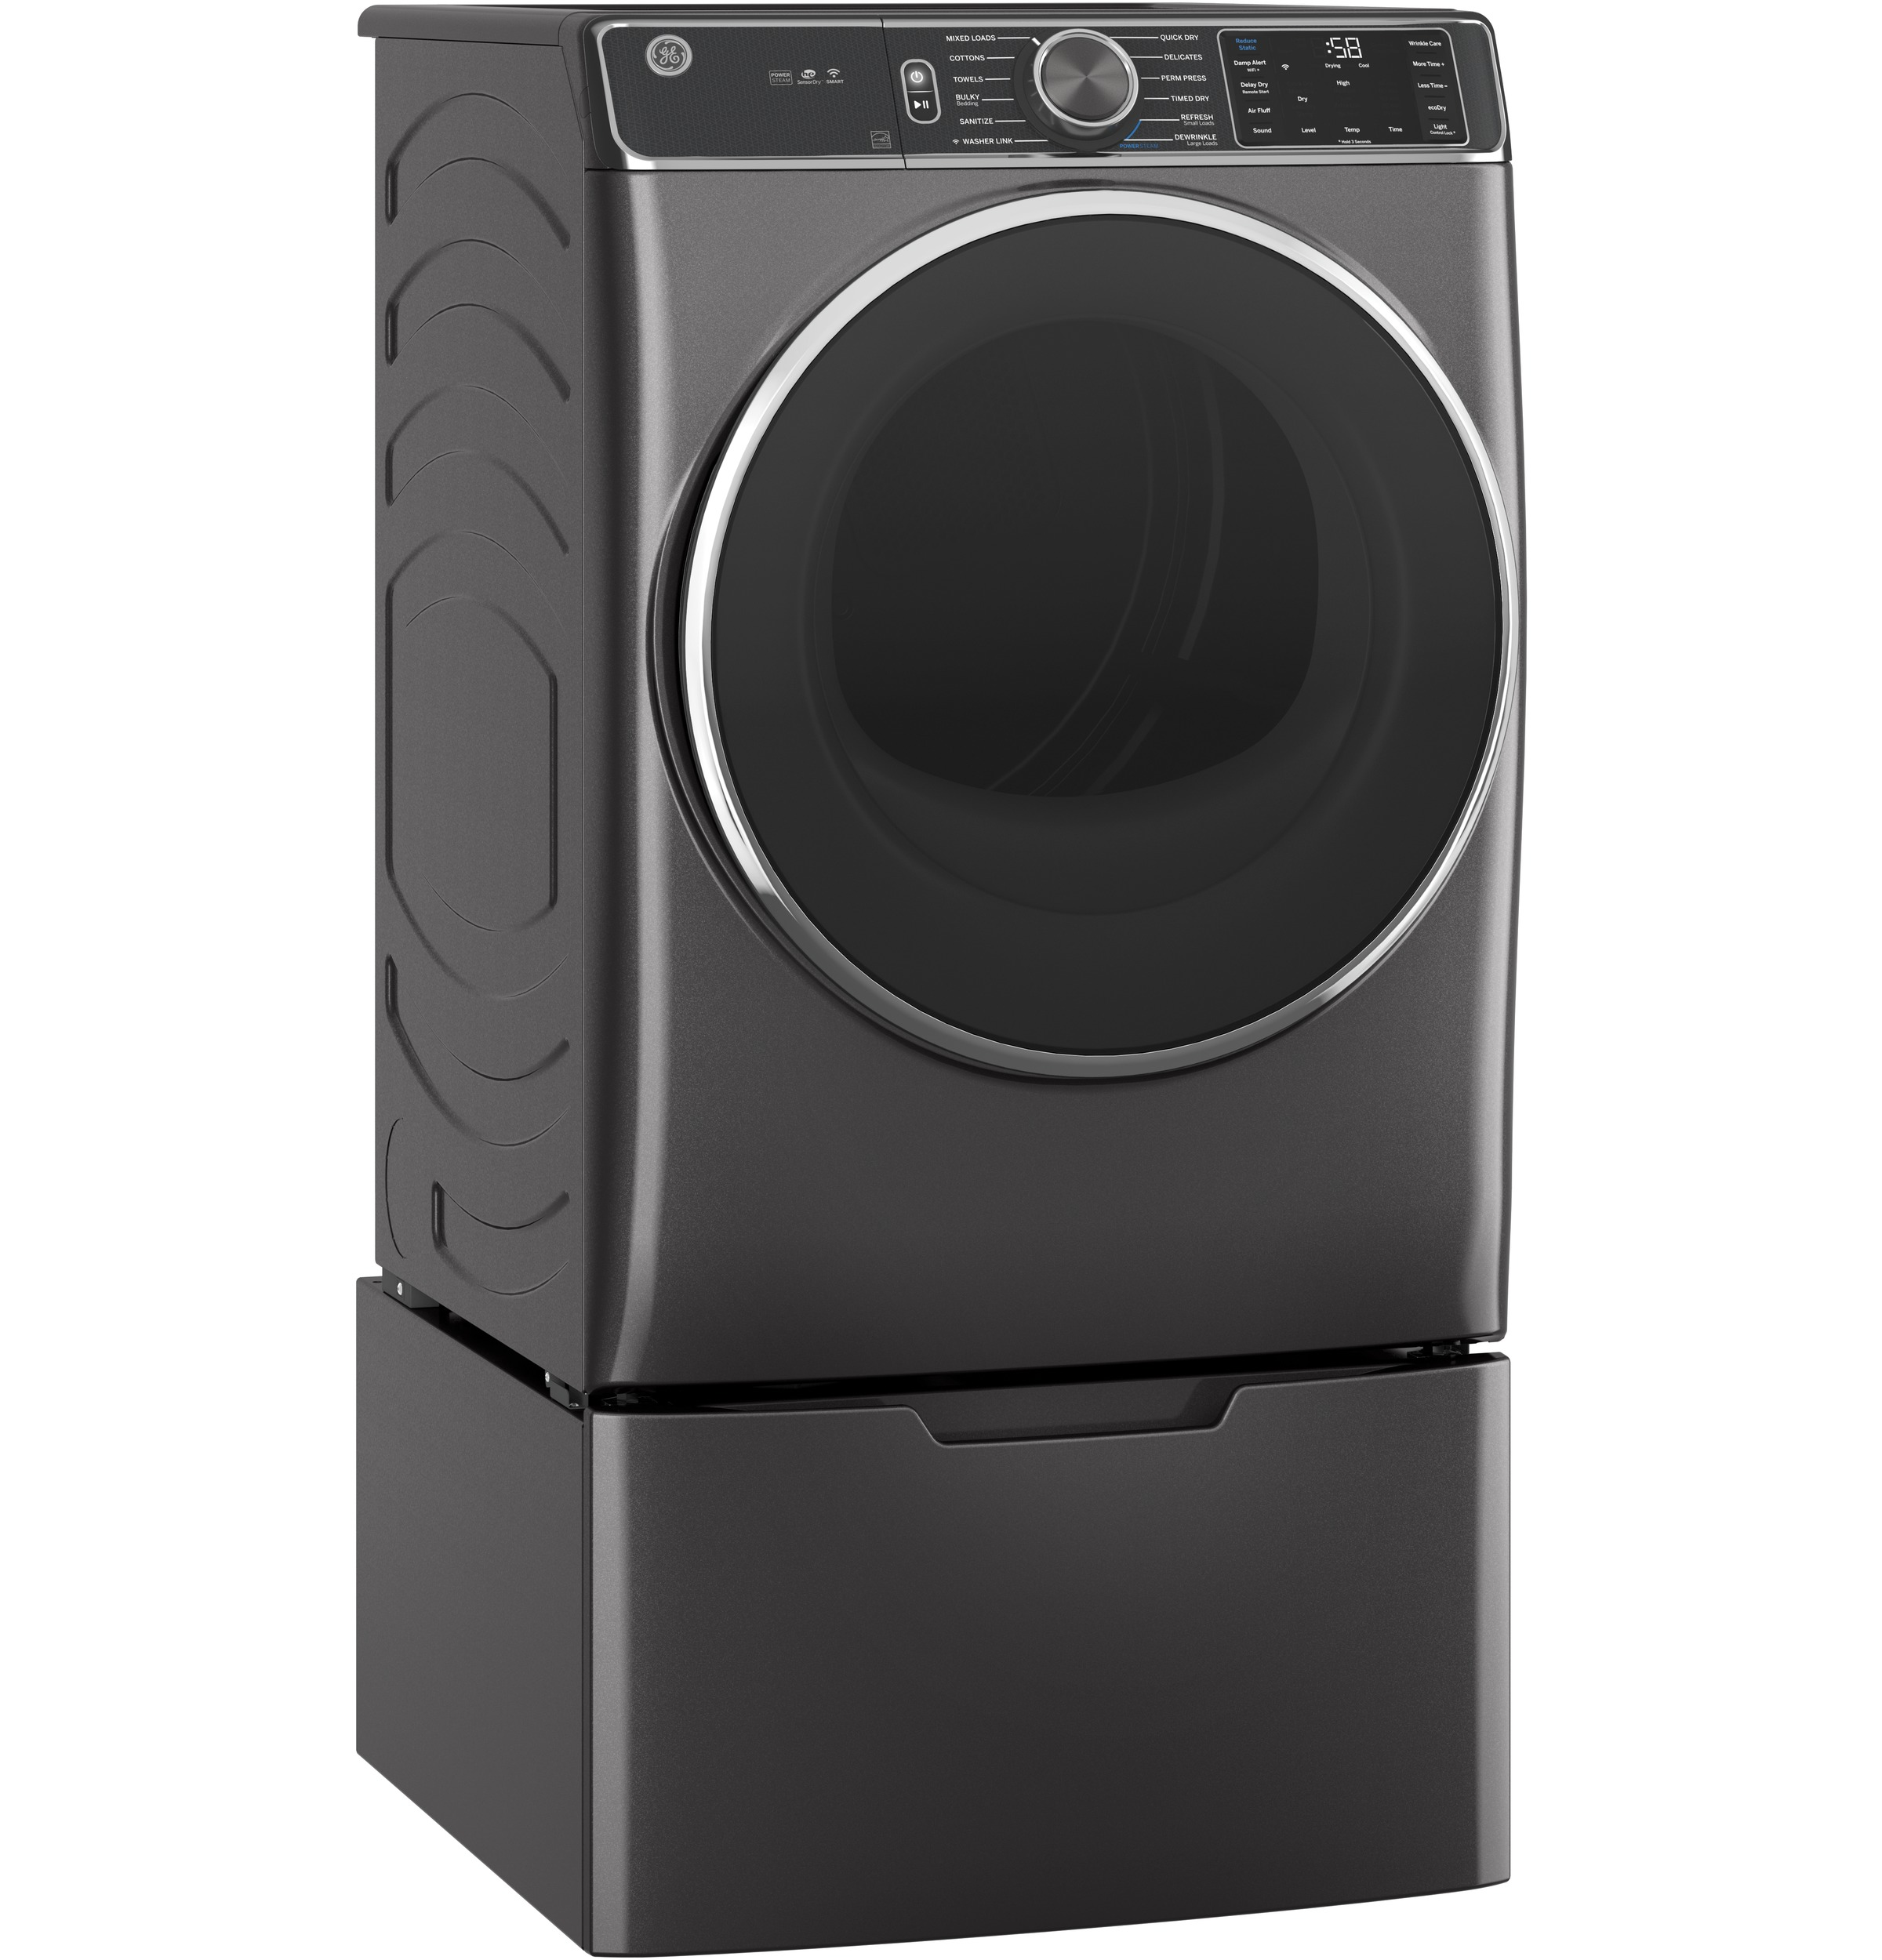 Model: GFD85GSPNDG   GE GE® 7.8 cu. ft. Capacity Smart Front Load Gas Dryer with Steam and Sanitize Cycle